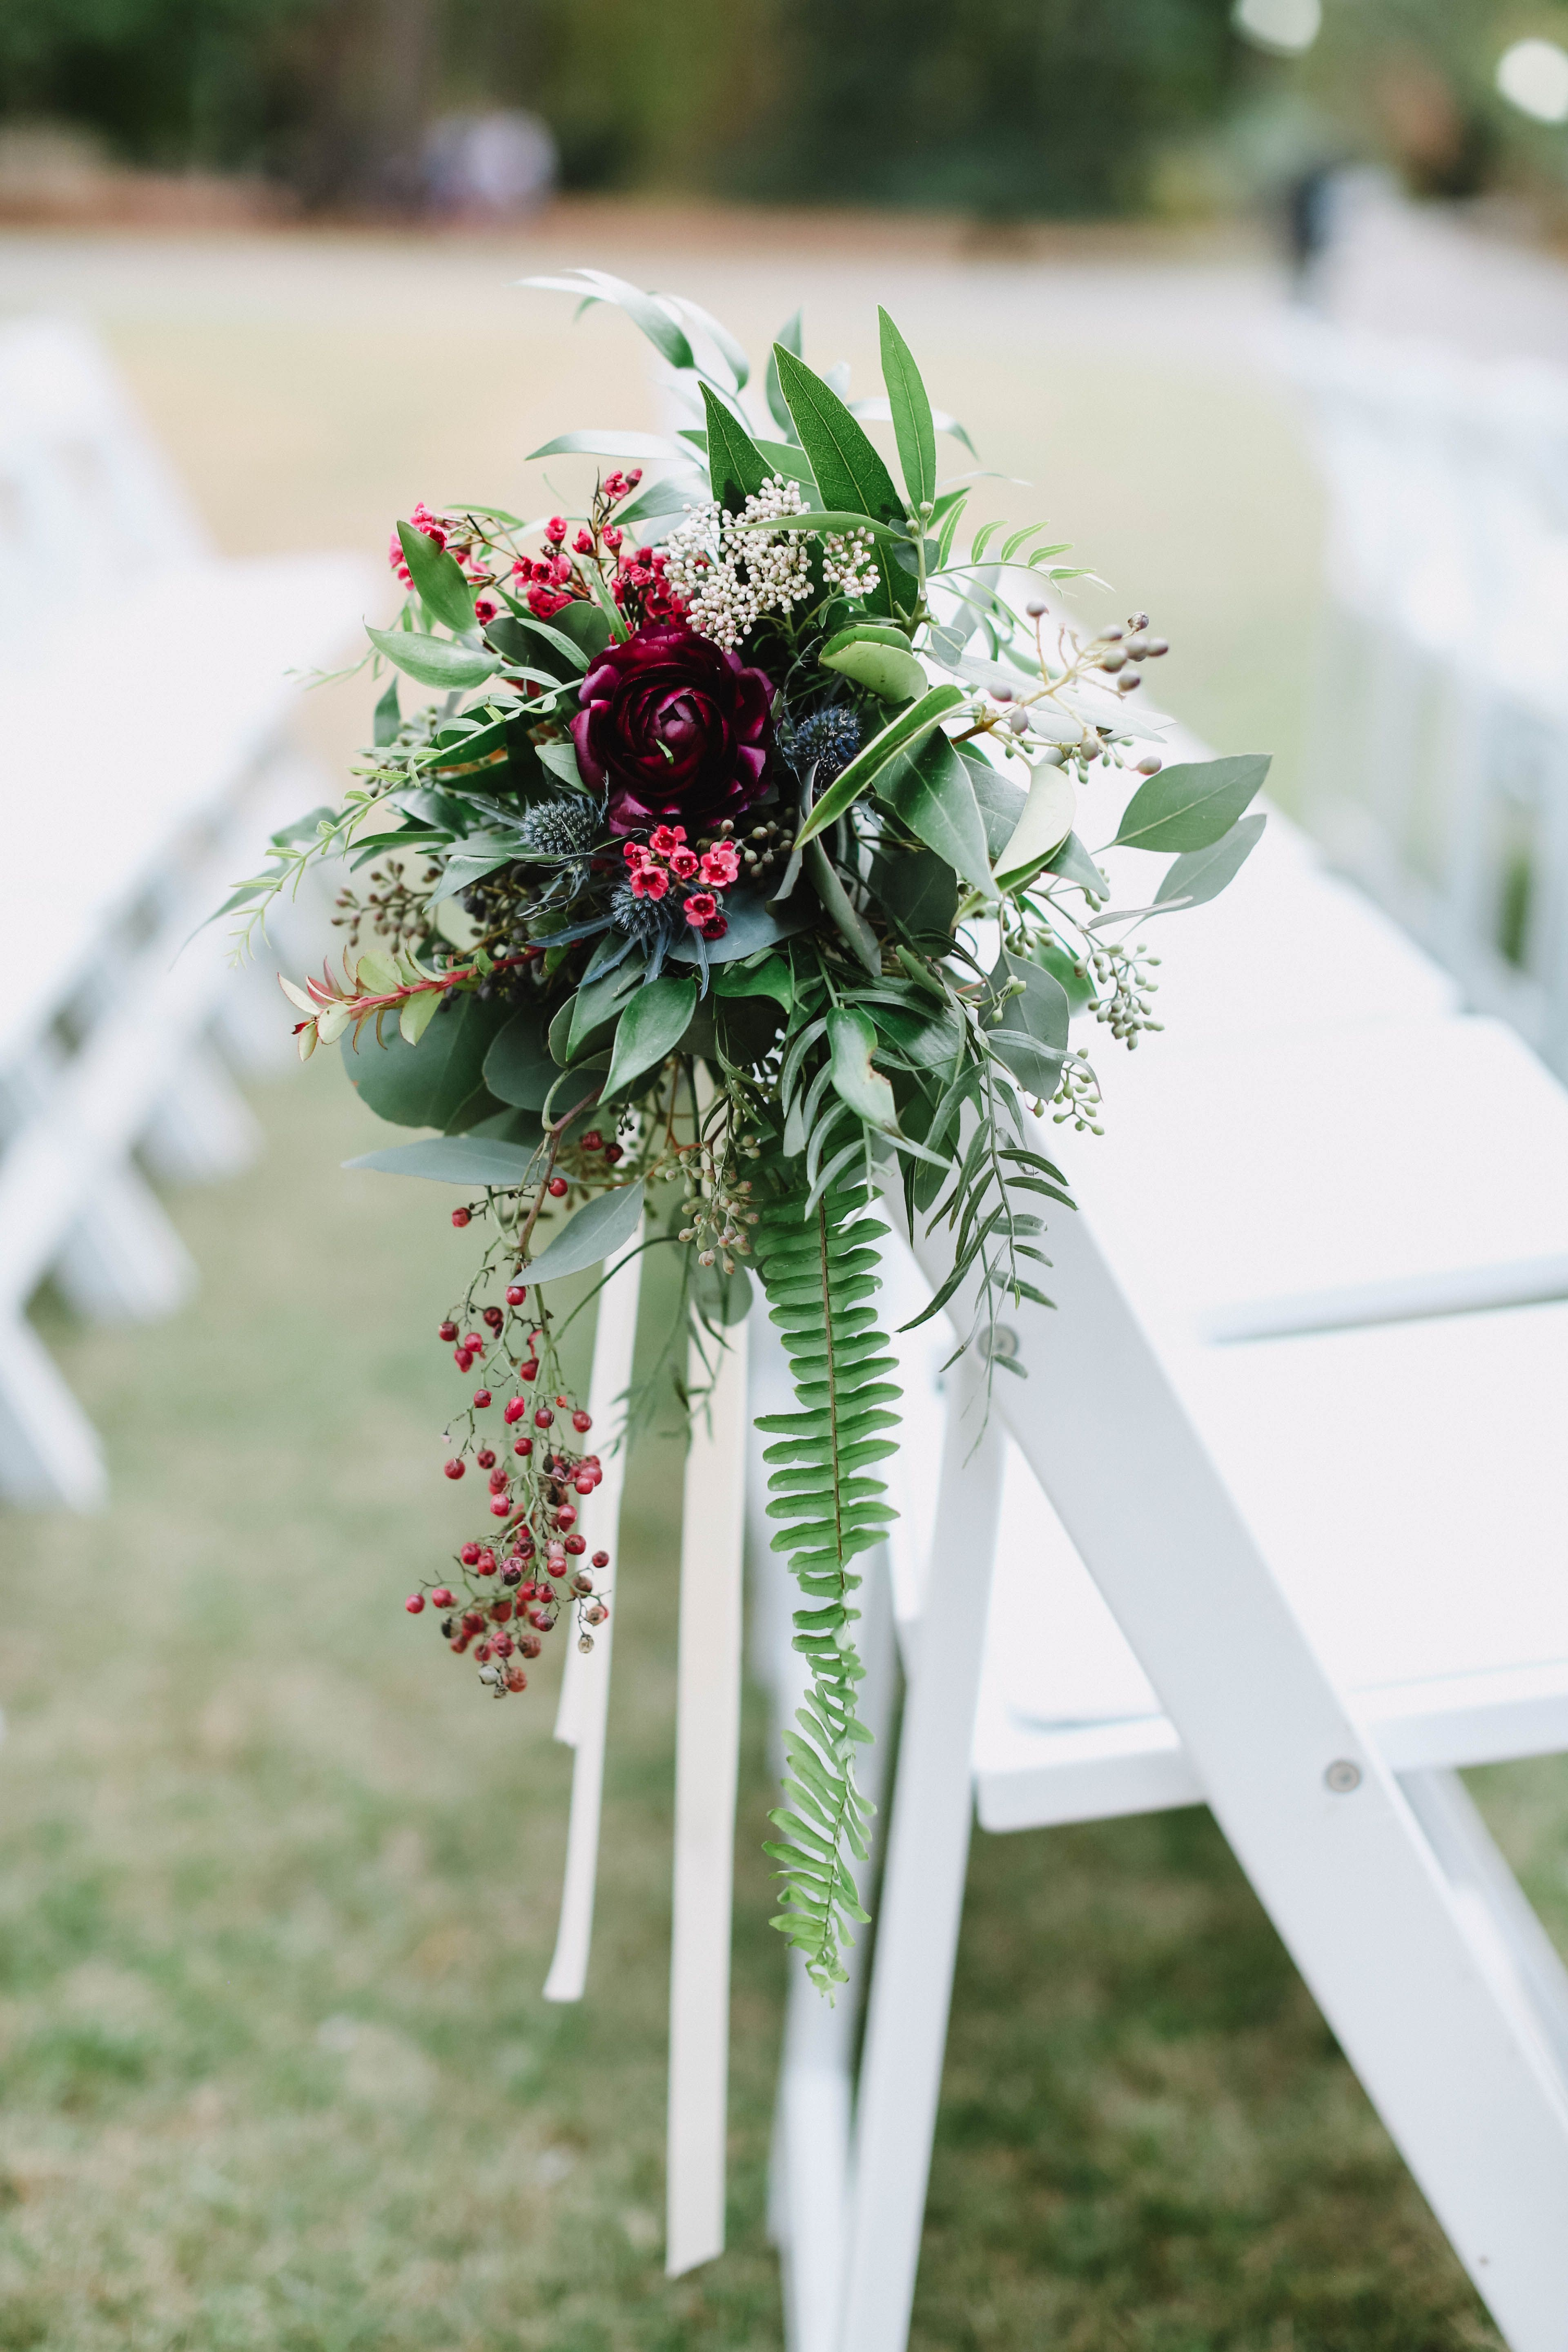 Aisle chair detail from November 2016 wedding. Florals by Studio Floral. Image by Jennifer Woodbery